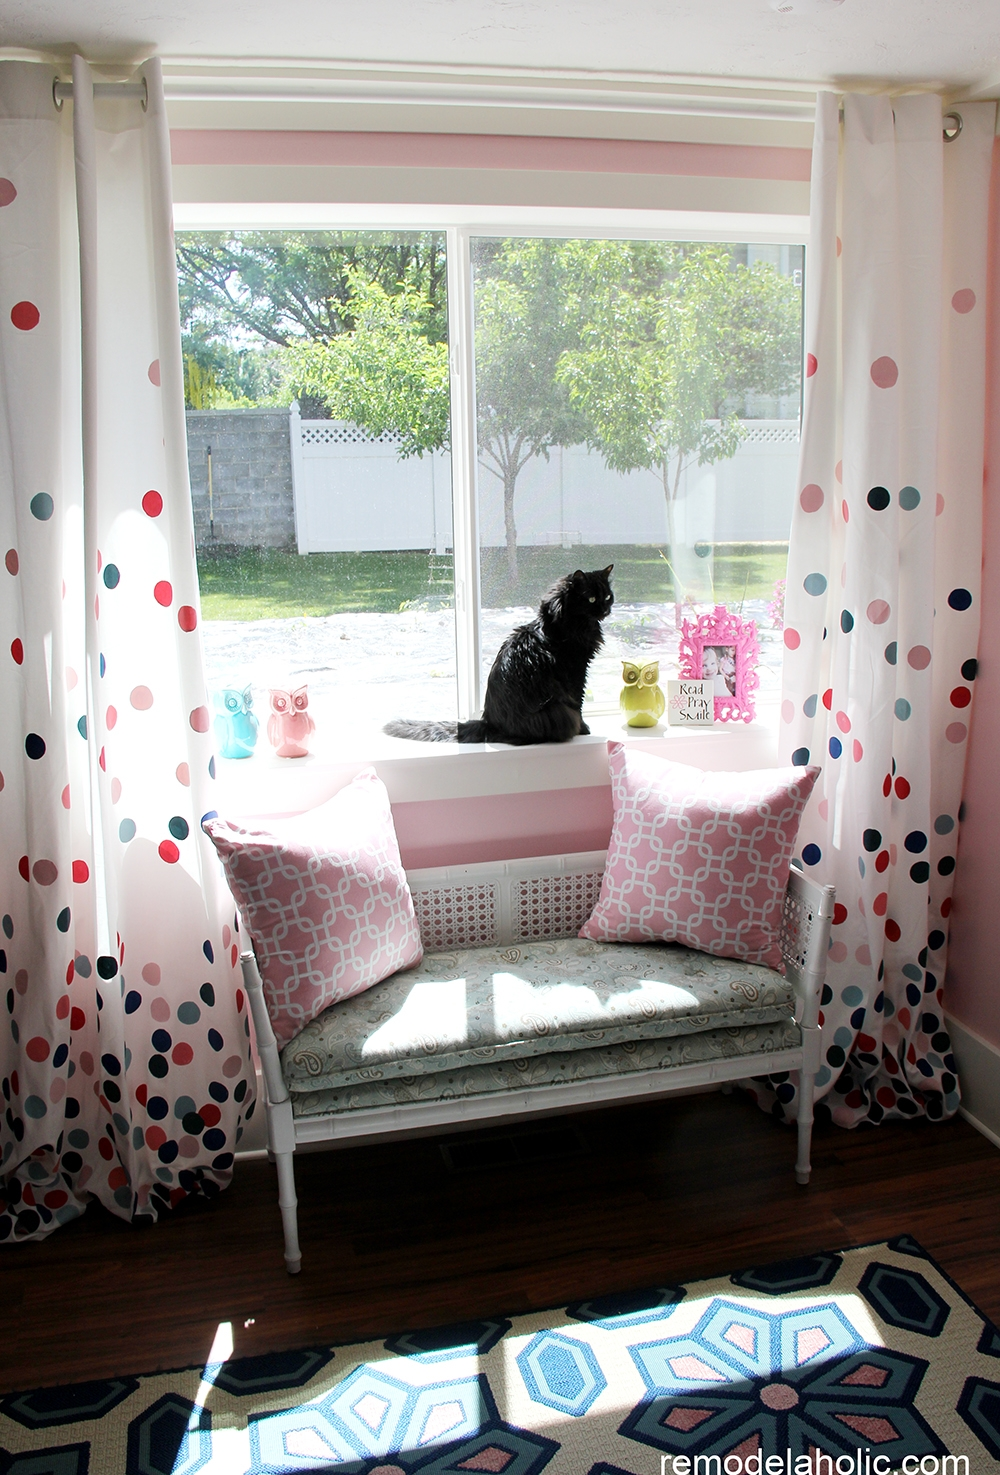 Remodelaholic Confetti Drapes Tutorial Pertaining To Navy And White Polka Dot Curtains (Image 22 of 25)